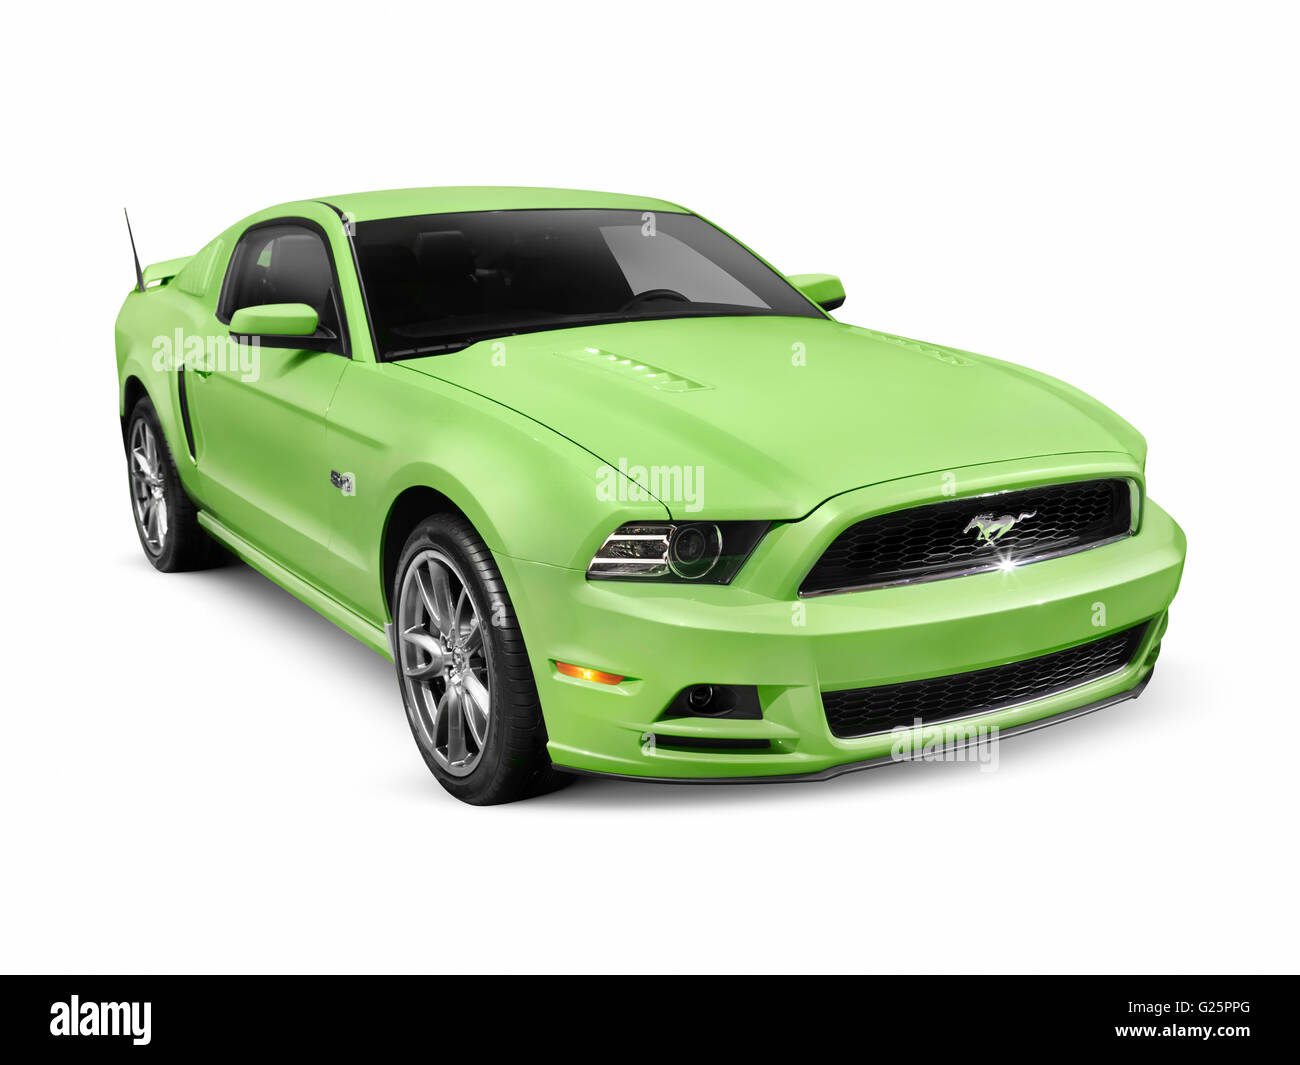 green 2013 ford mustang gt 5 0 sports car stock photo royalty free image 104619160 alamy. Black Bedroom Furniture Sets. Home Design Ideas